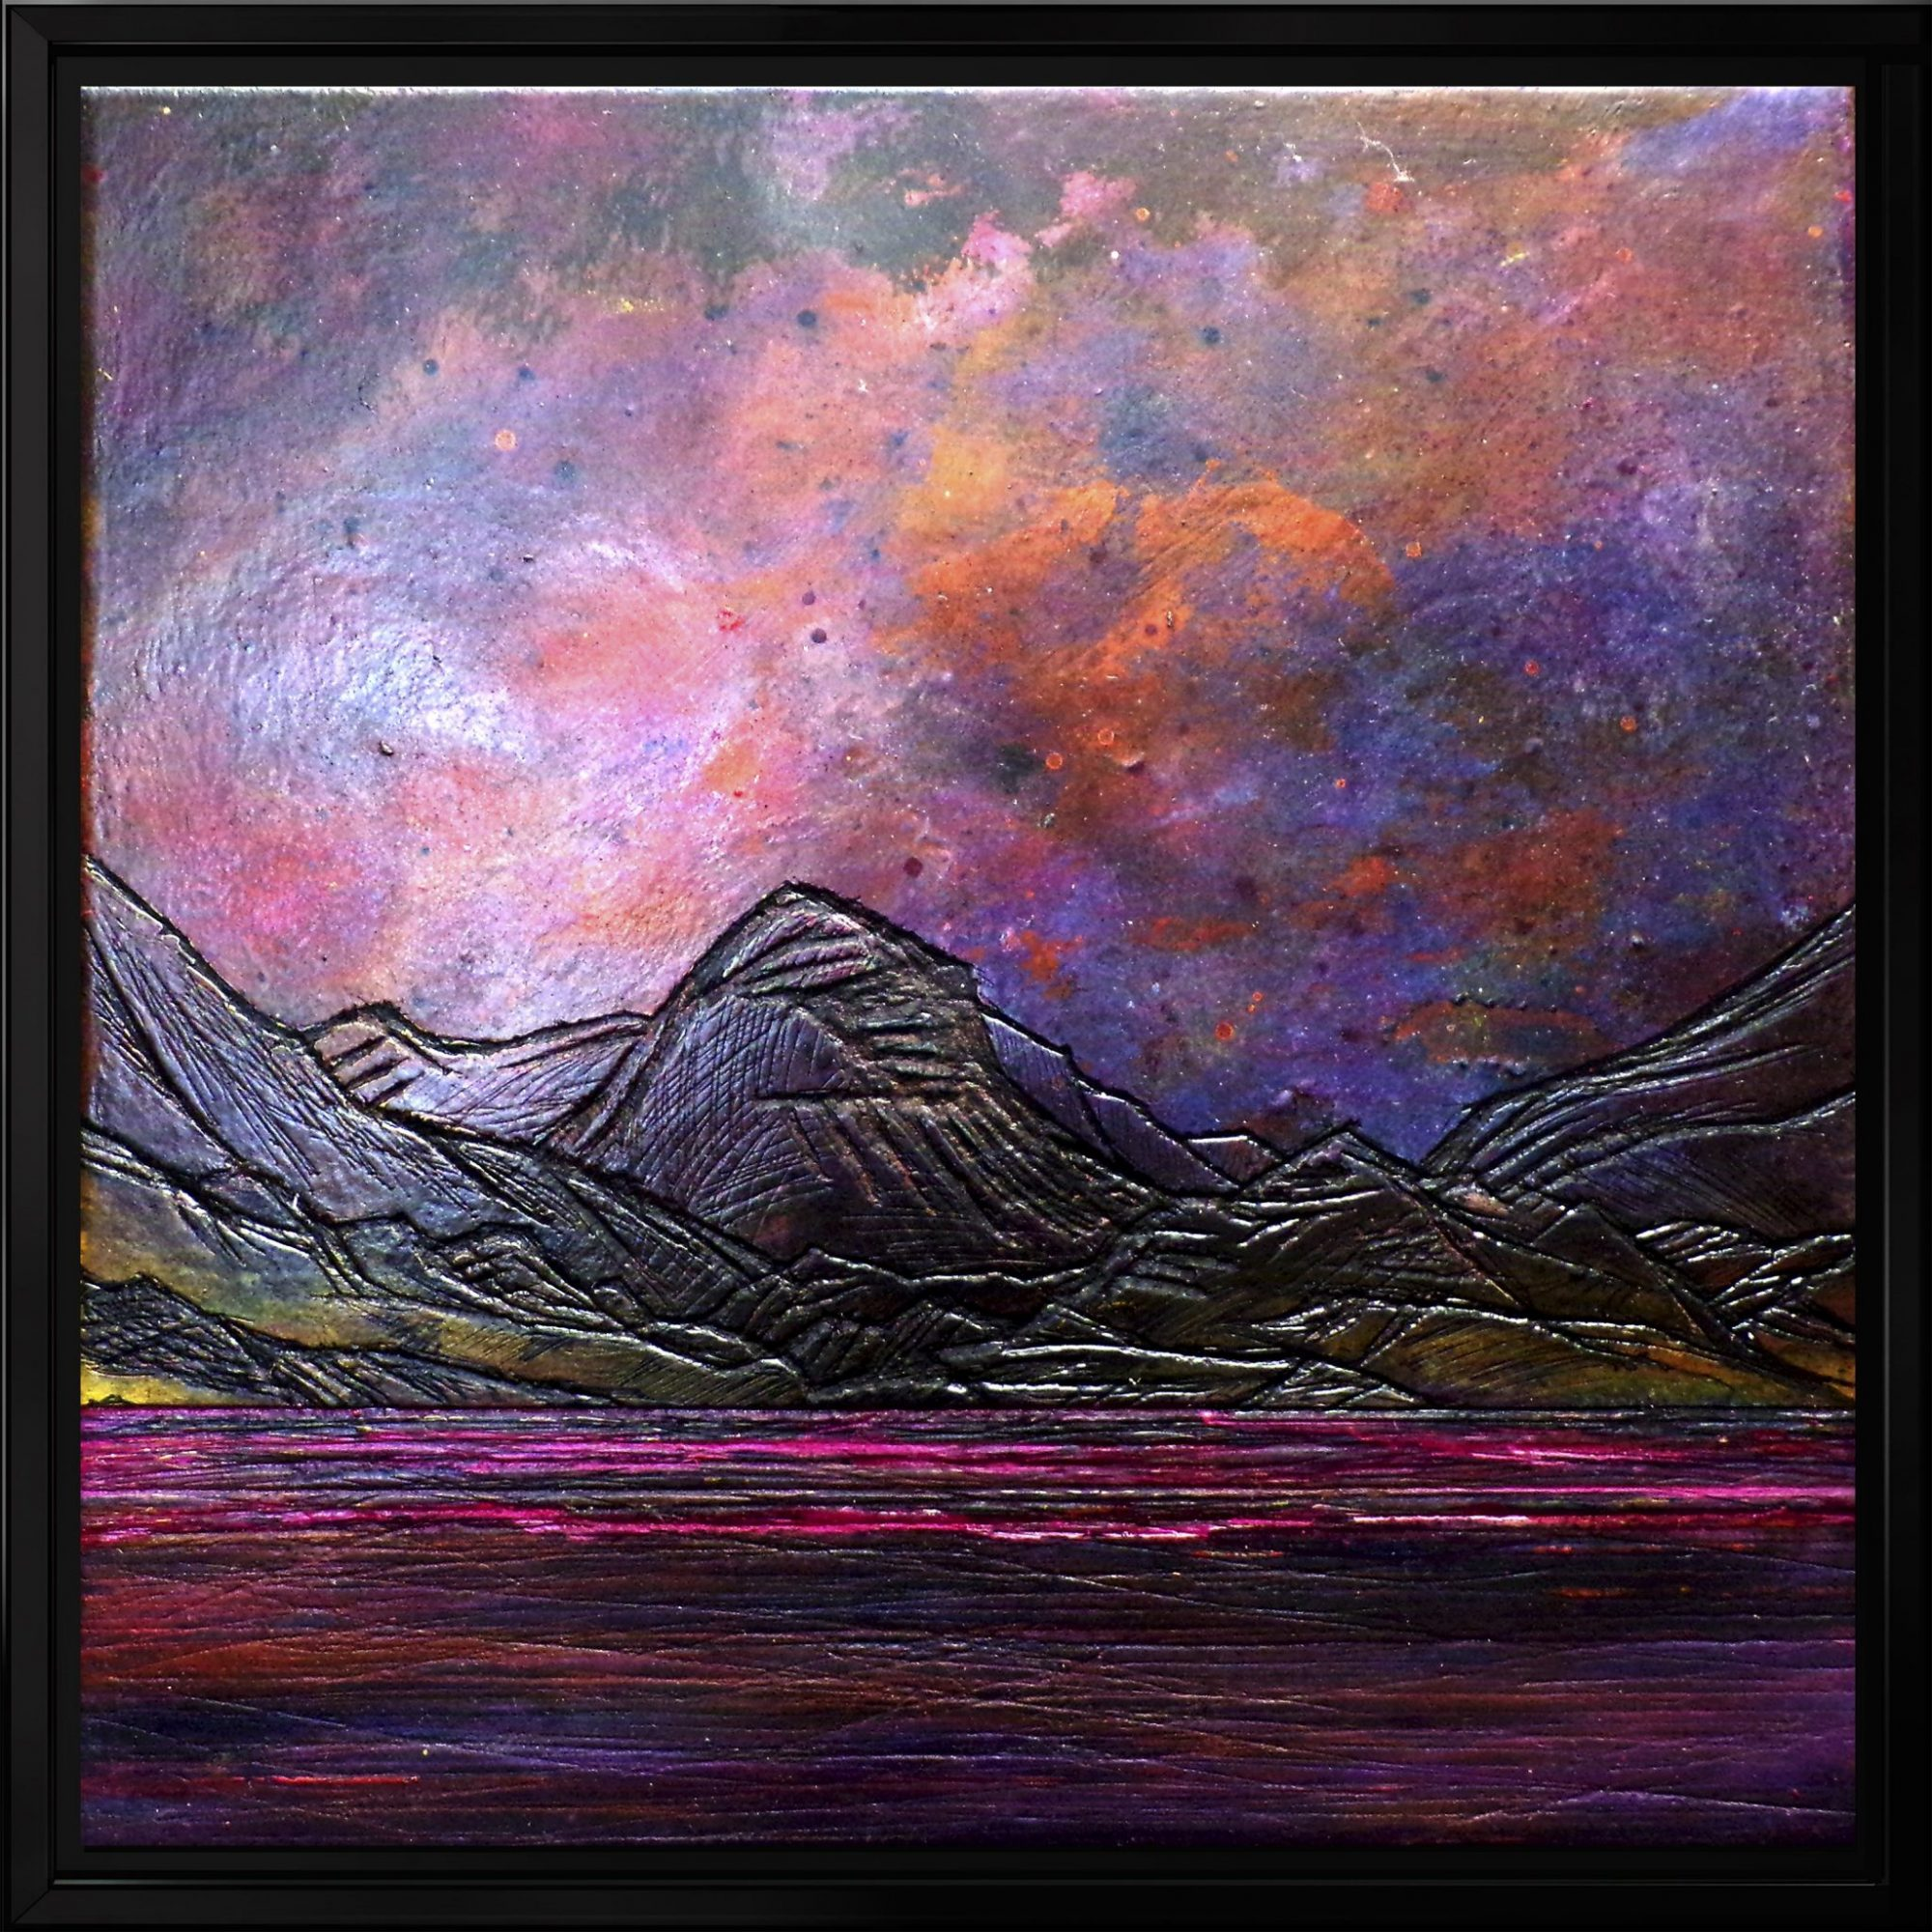 Framed canvas painting and prints of Marsco, Glen Sligachan, Skye by artist Andy Peutherer